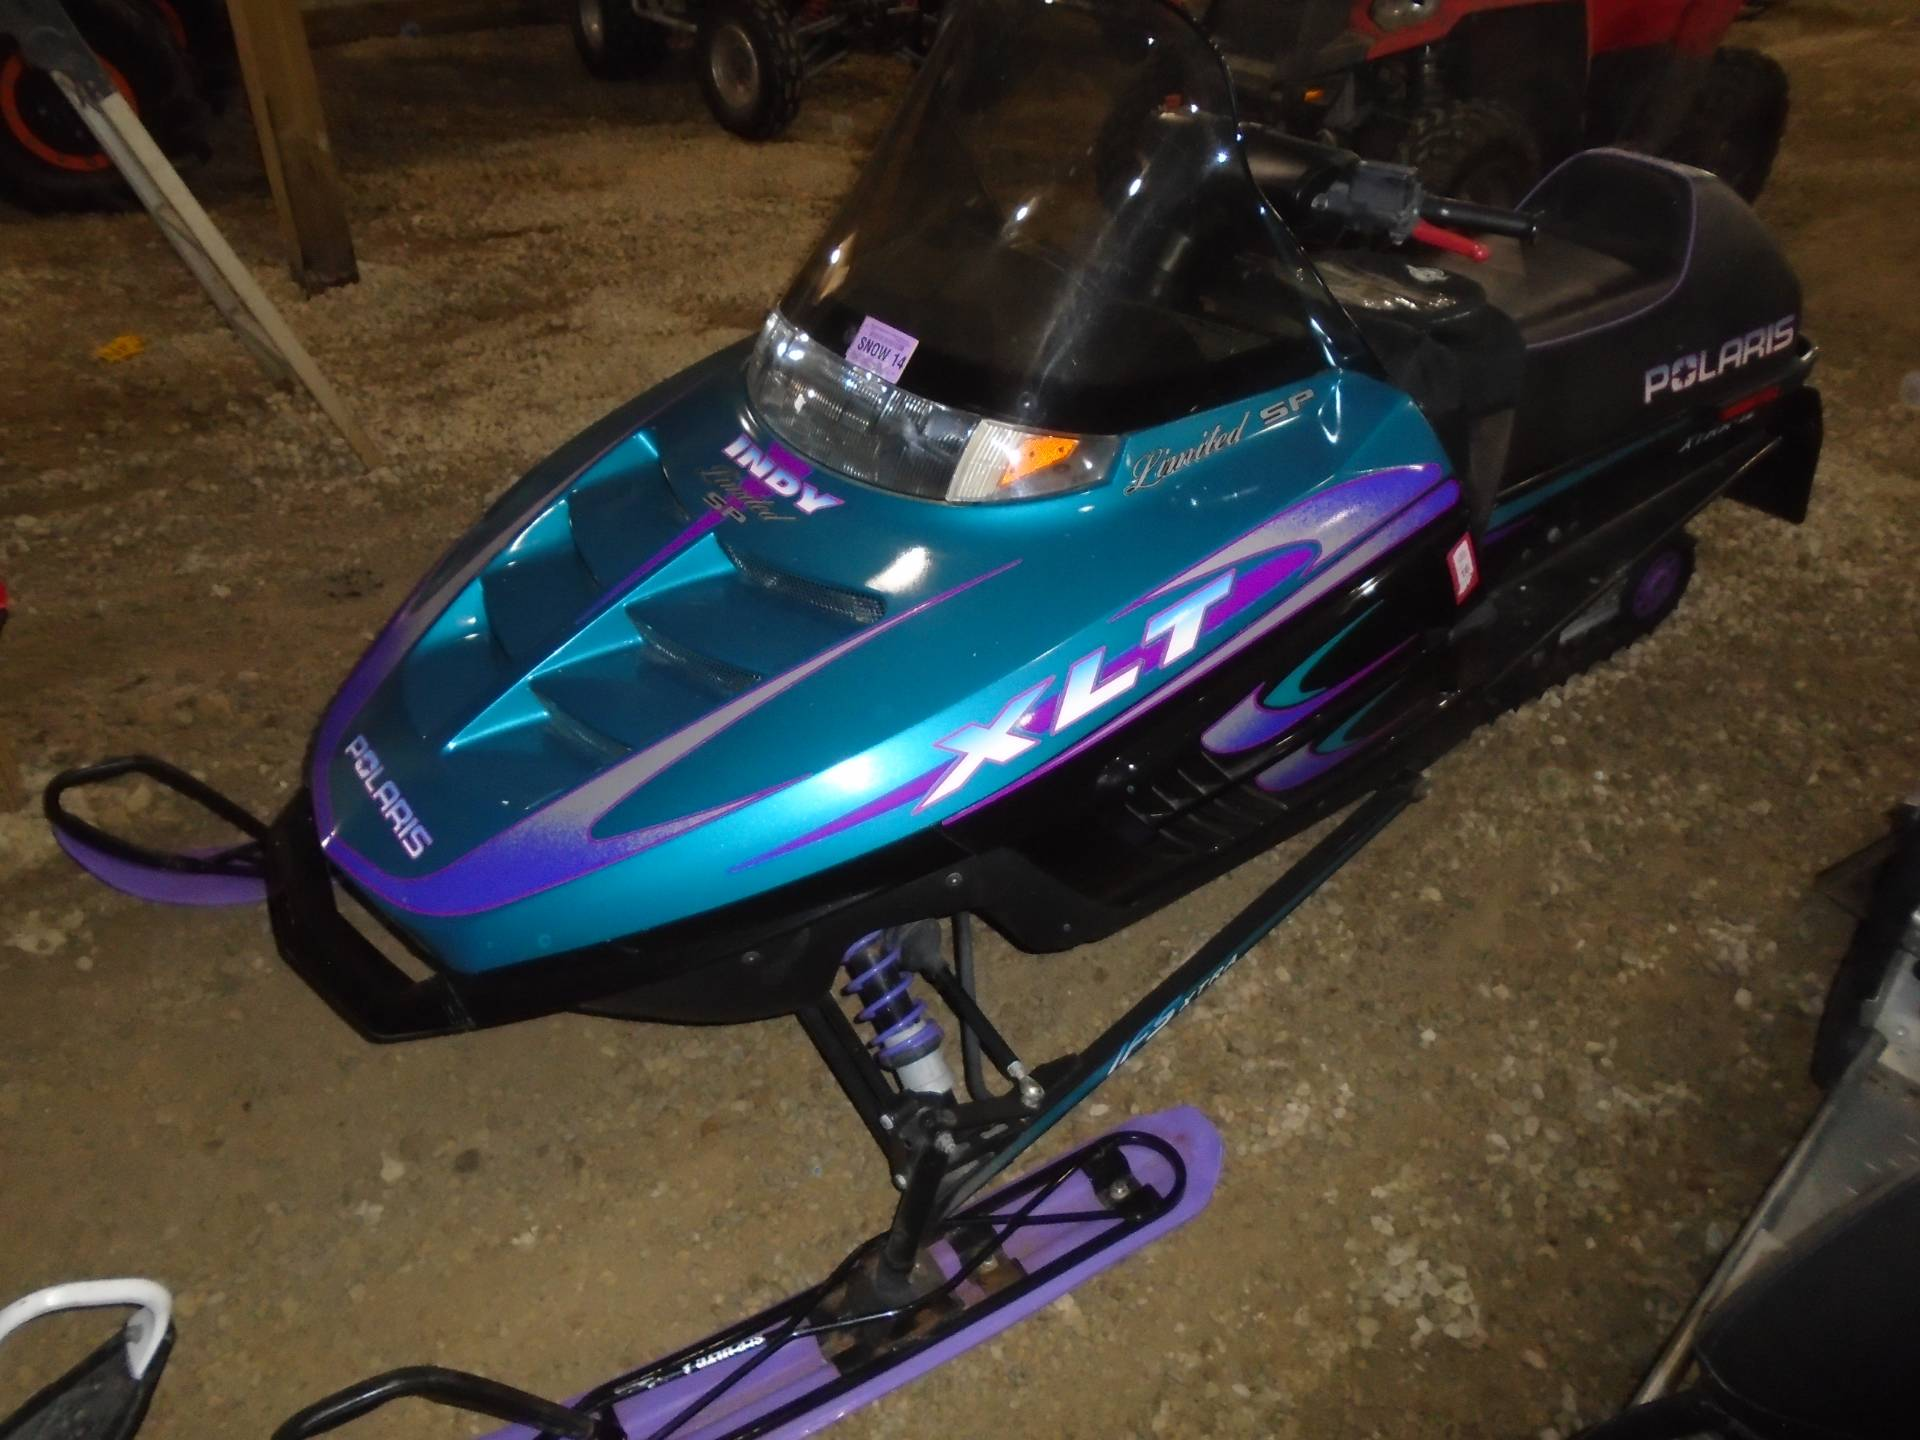 1997 Polaris INDY XLT SP in Lake Mills, Iowa - Photo 1